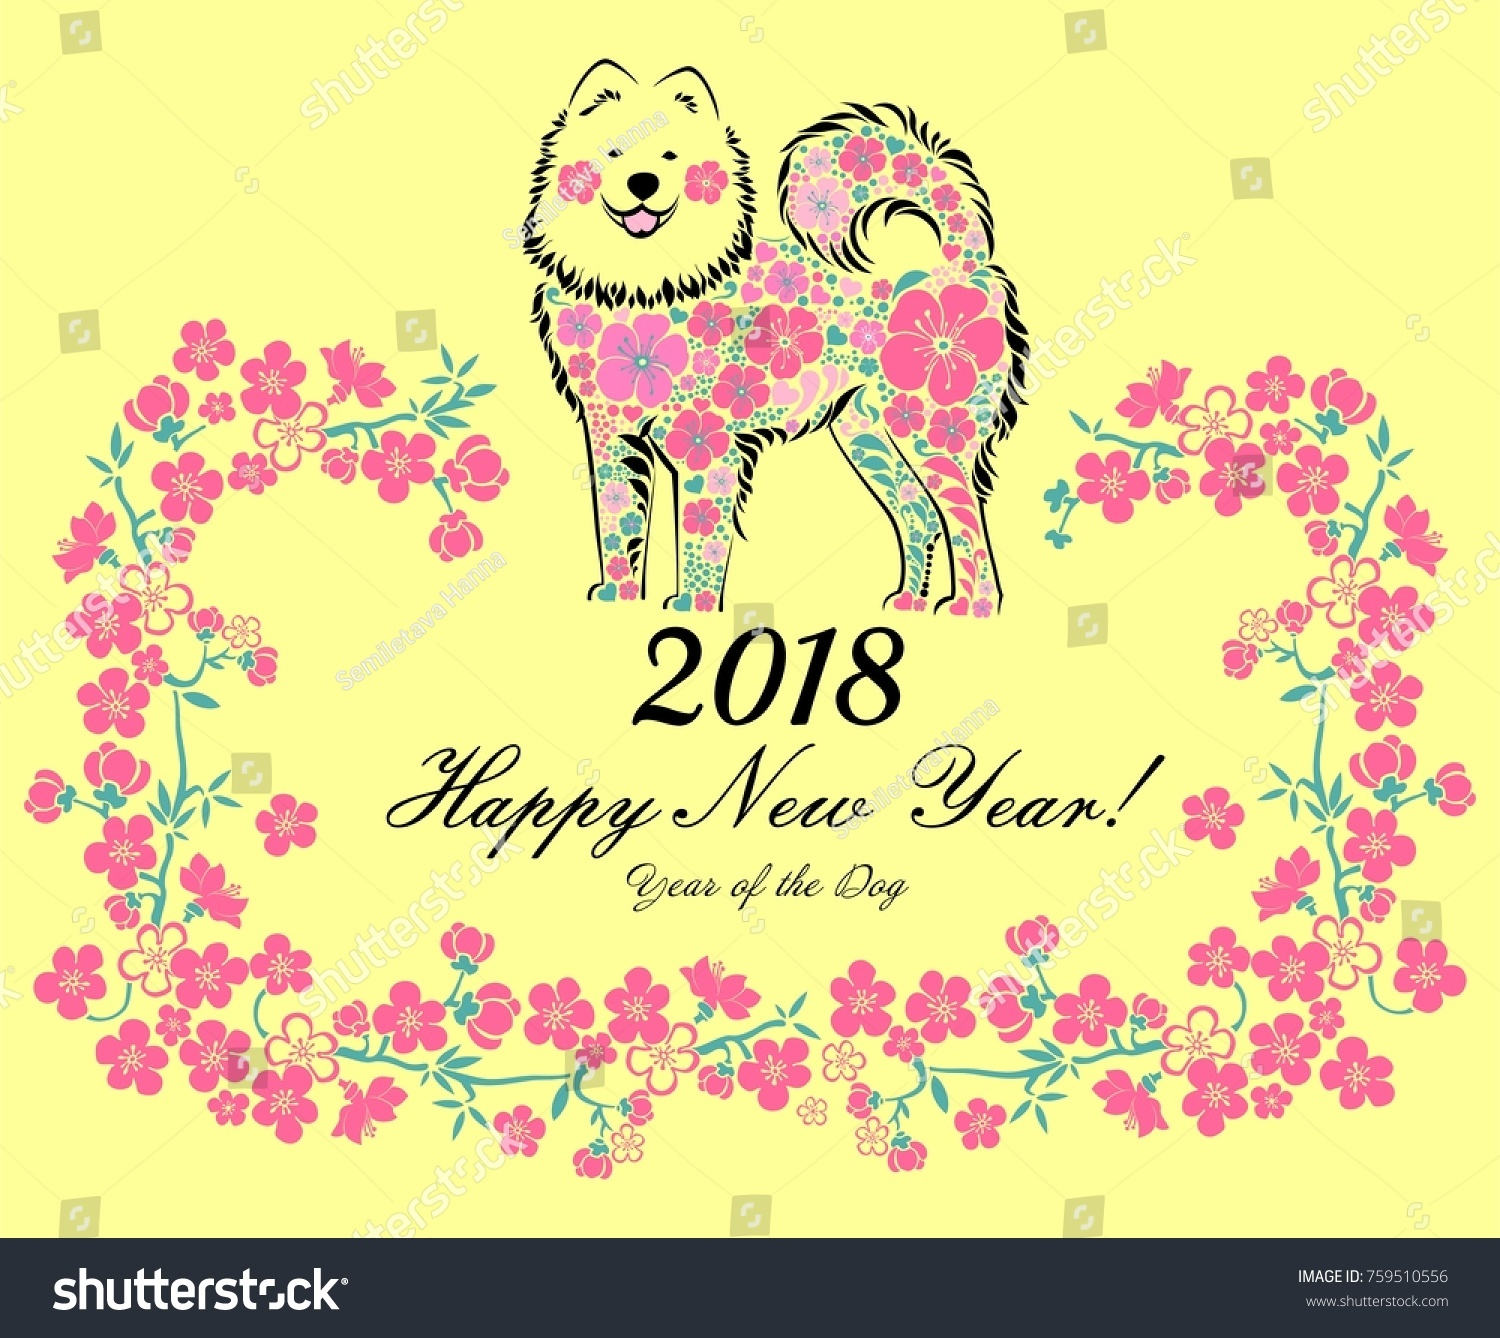 2018 happy new year greeting card celebration yellow background with dog pink flower and